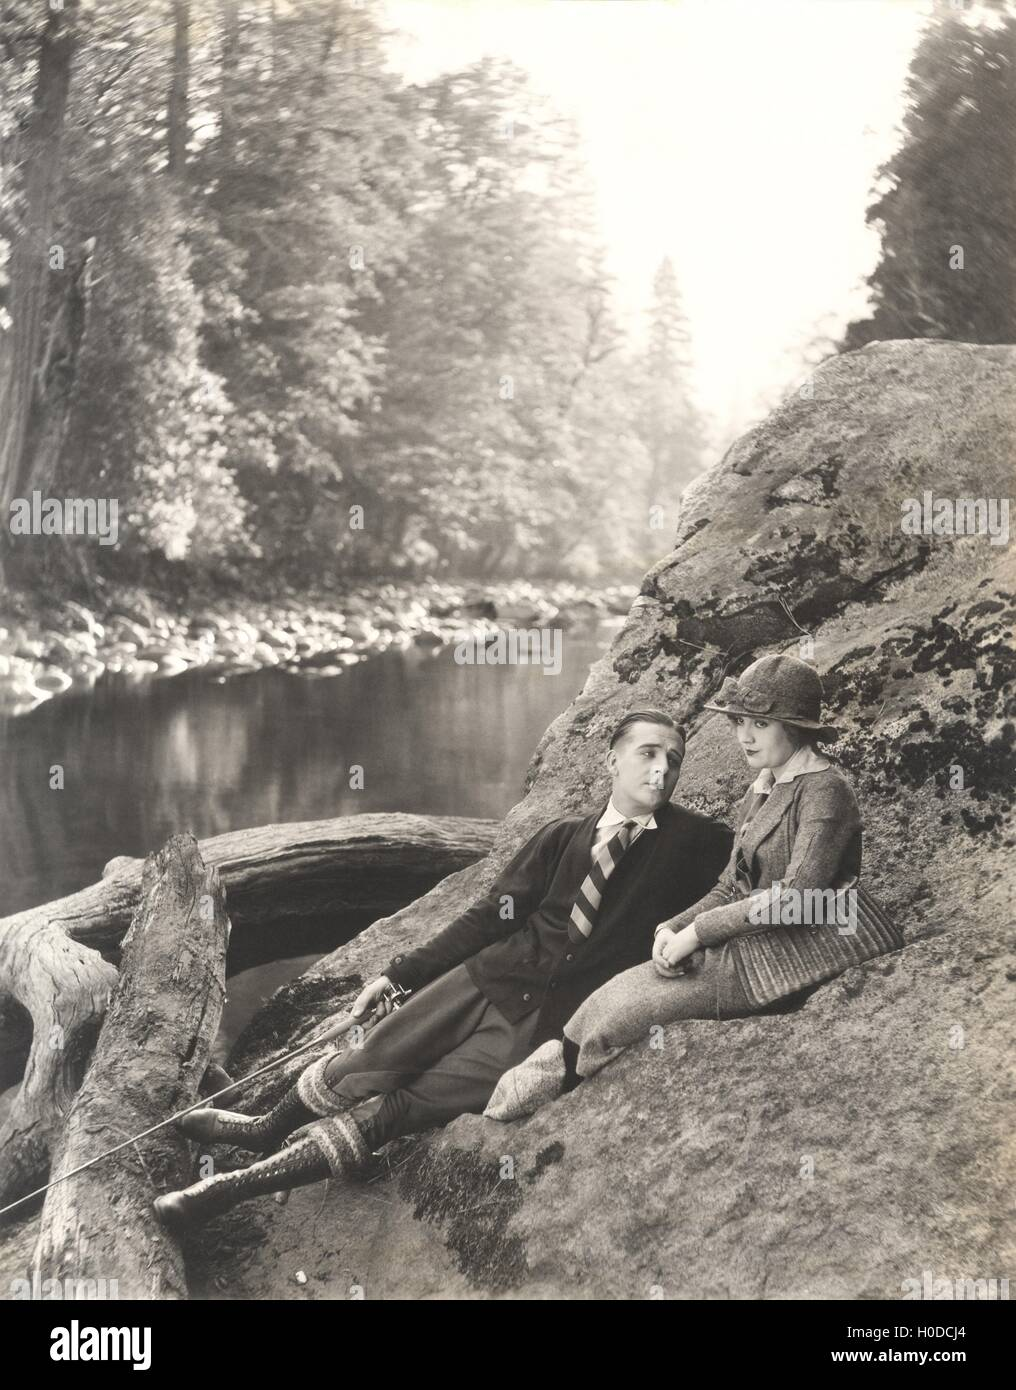 Couple sitting on rock beside stream - Stock Image